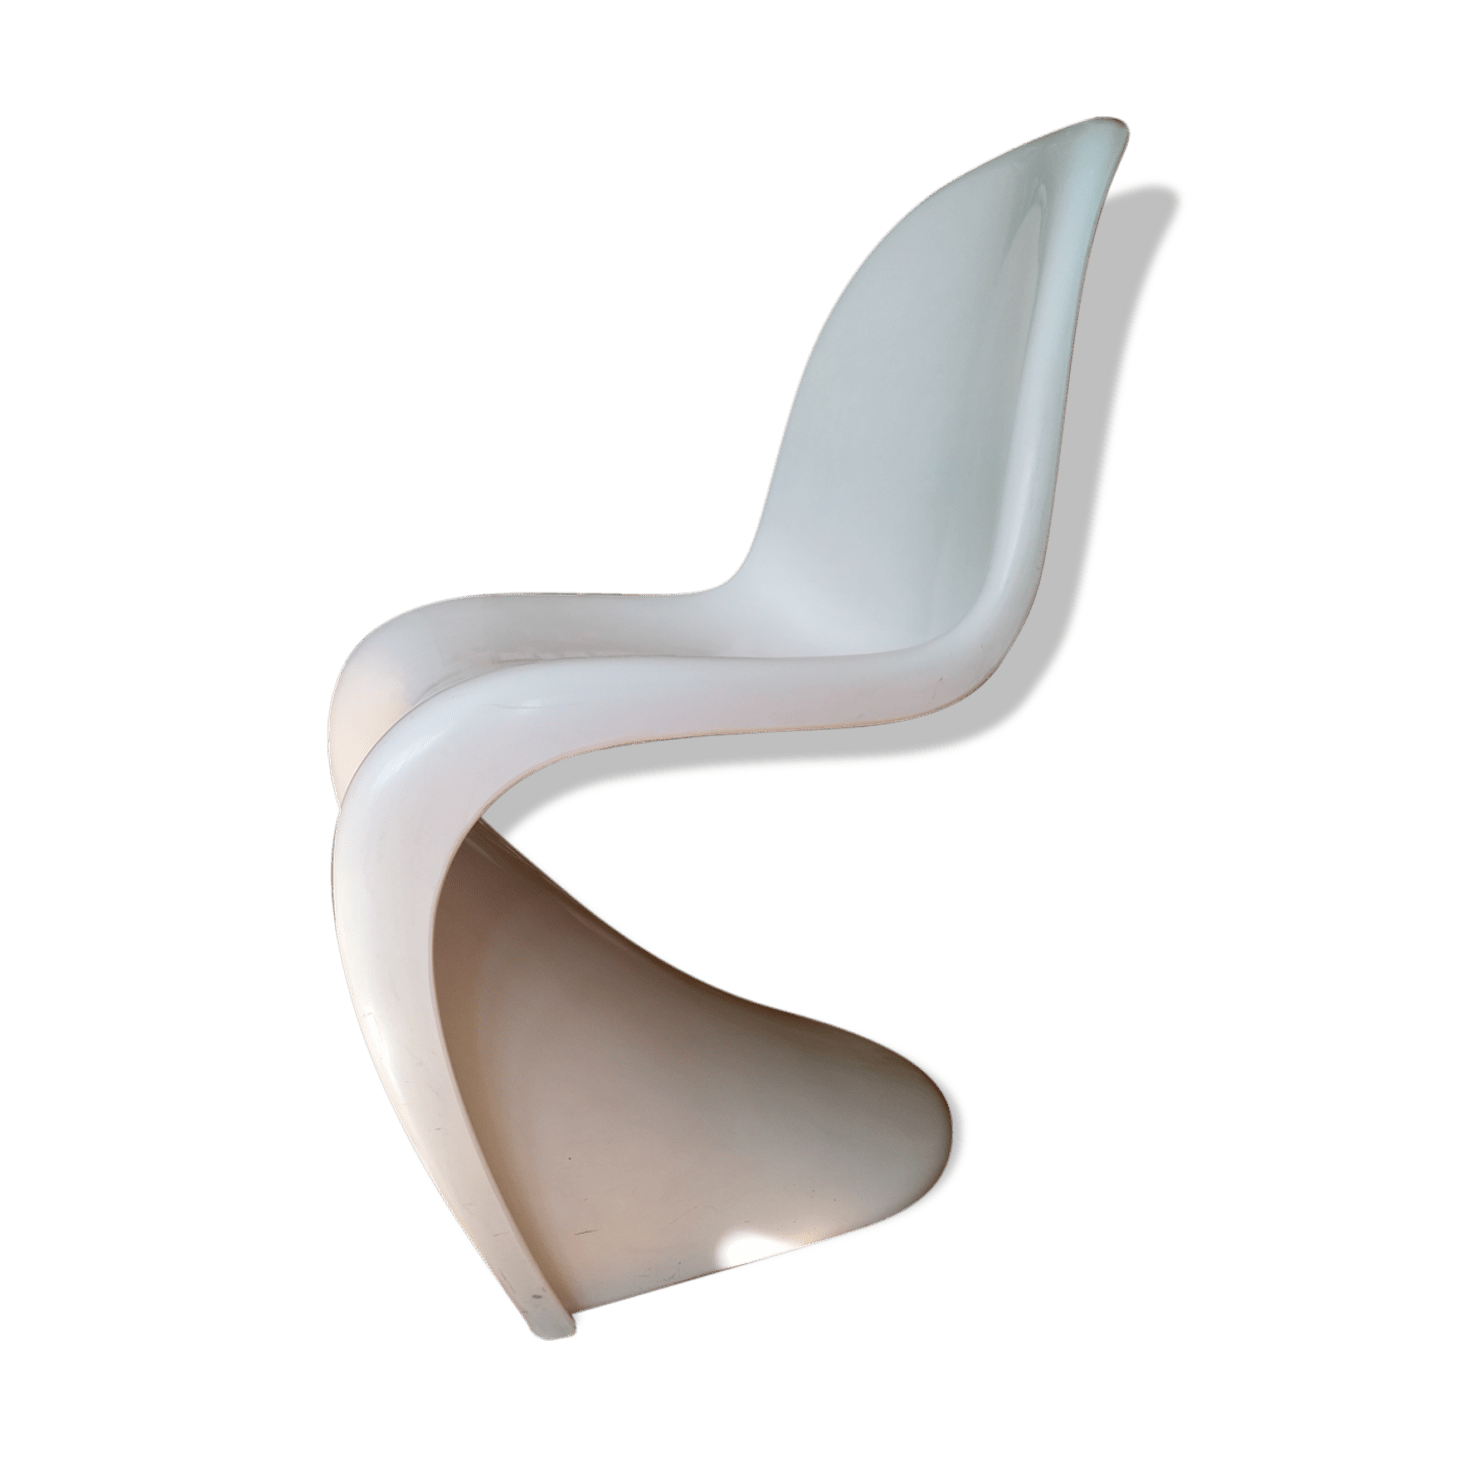 Chaise Originale Pas Cher Pantone Chaise Stunning Full Size Of Verner Panton Chairs D In